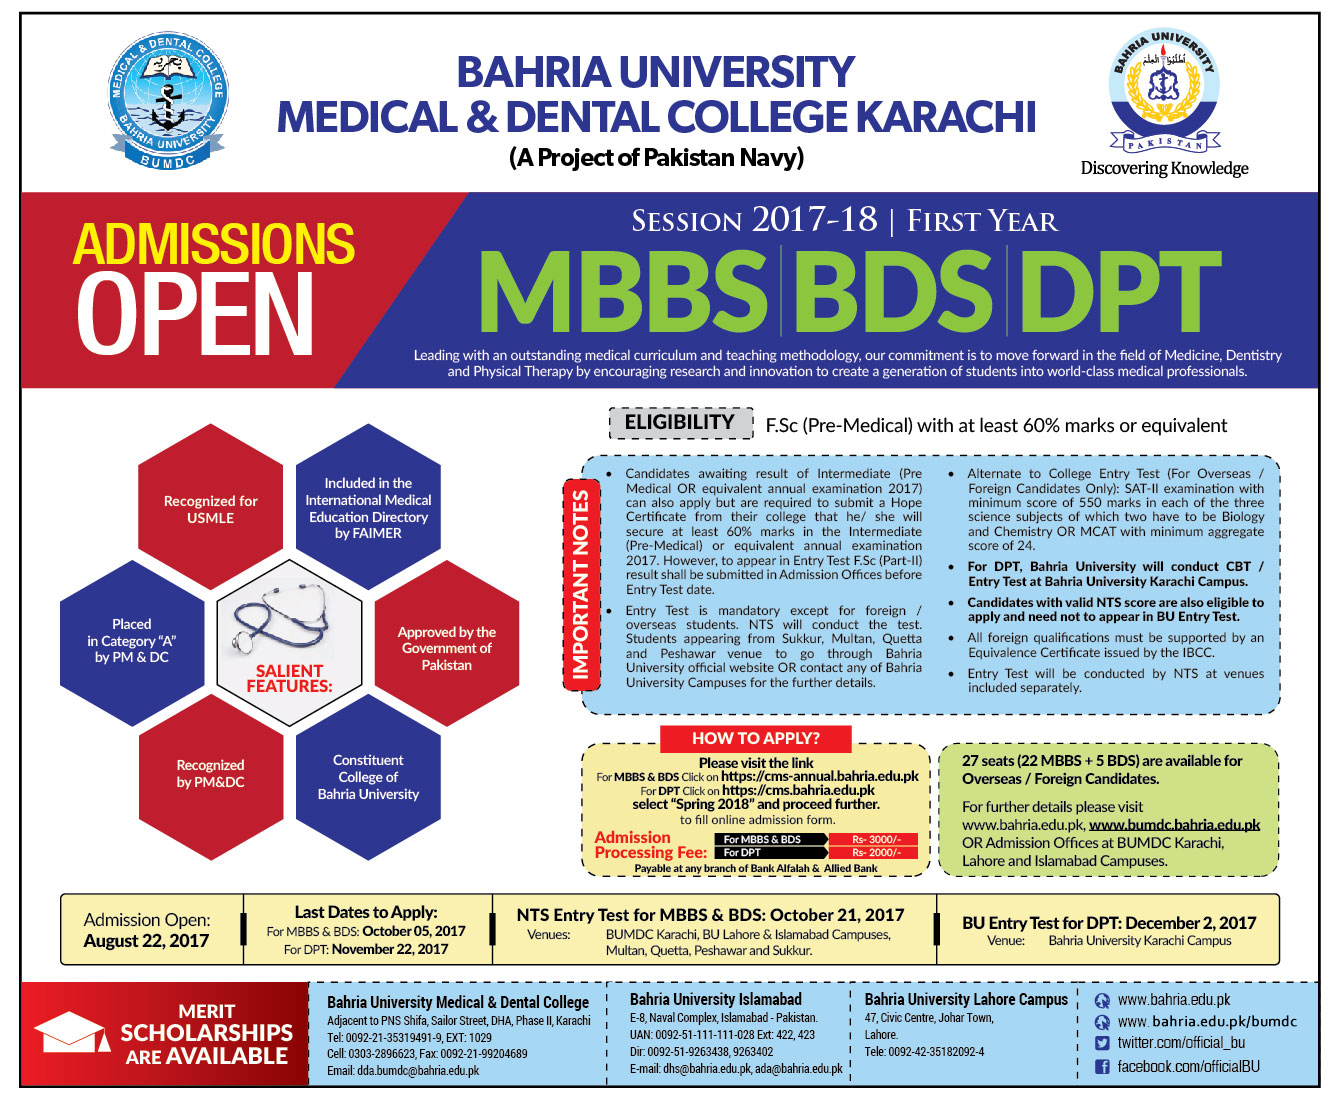 Bahria University Mental & Dental College Karachi Admissions Open – 2017 – 2018